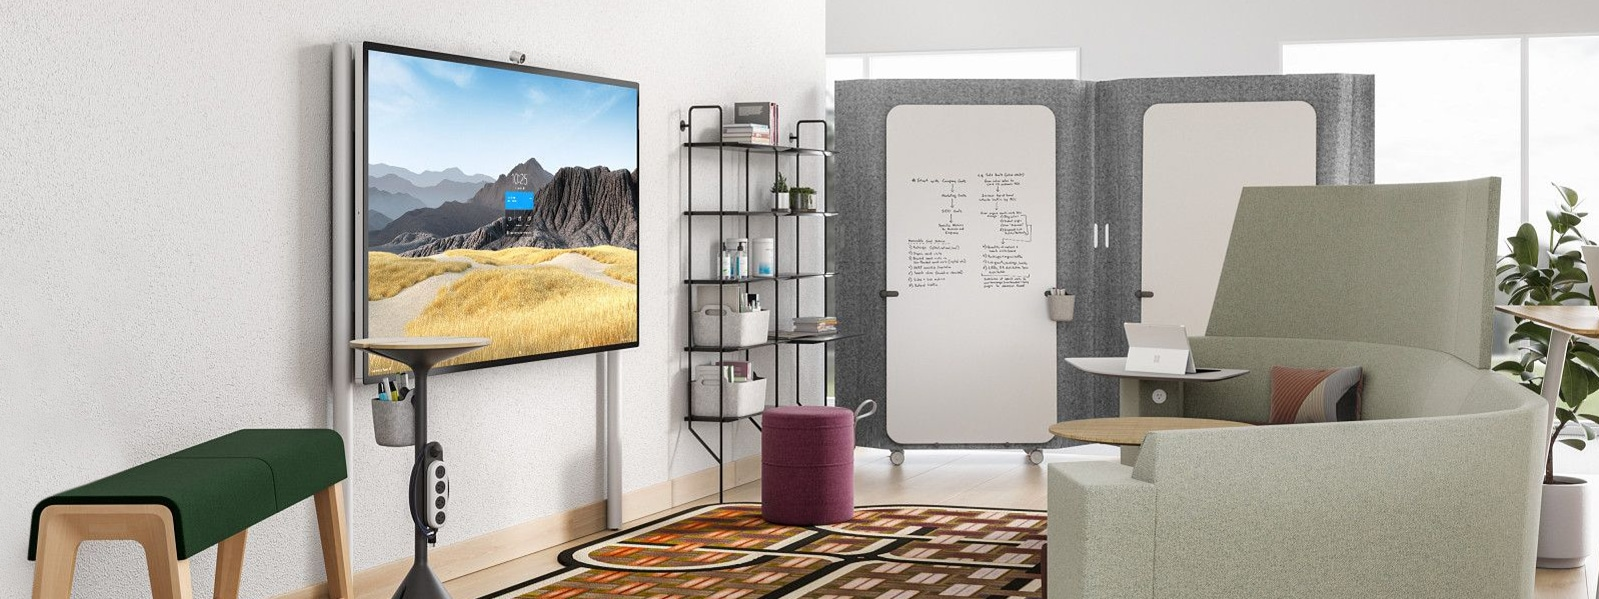 A Surface HUB 2S 85'' on a Floor Supported Wall Mount in an office setting.